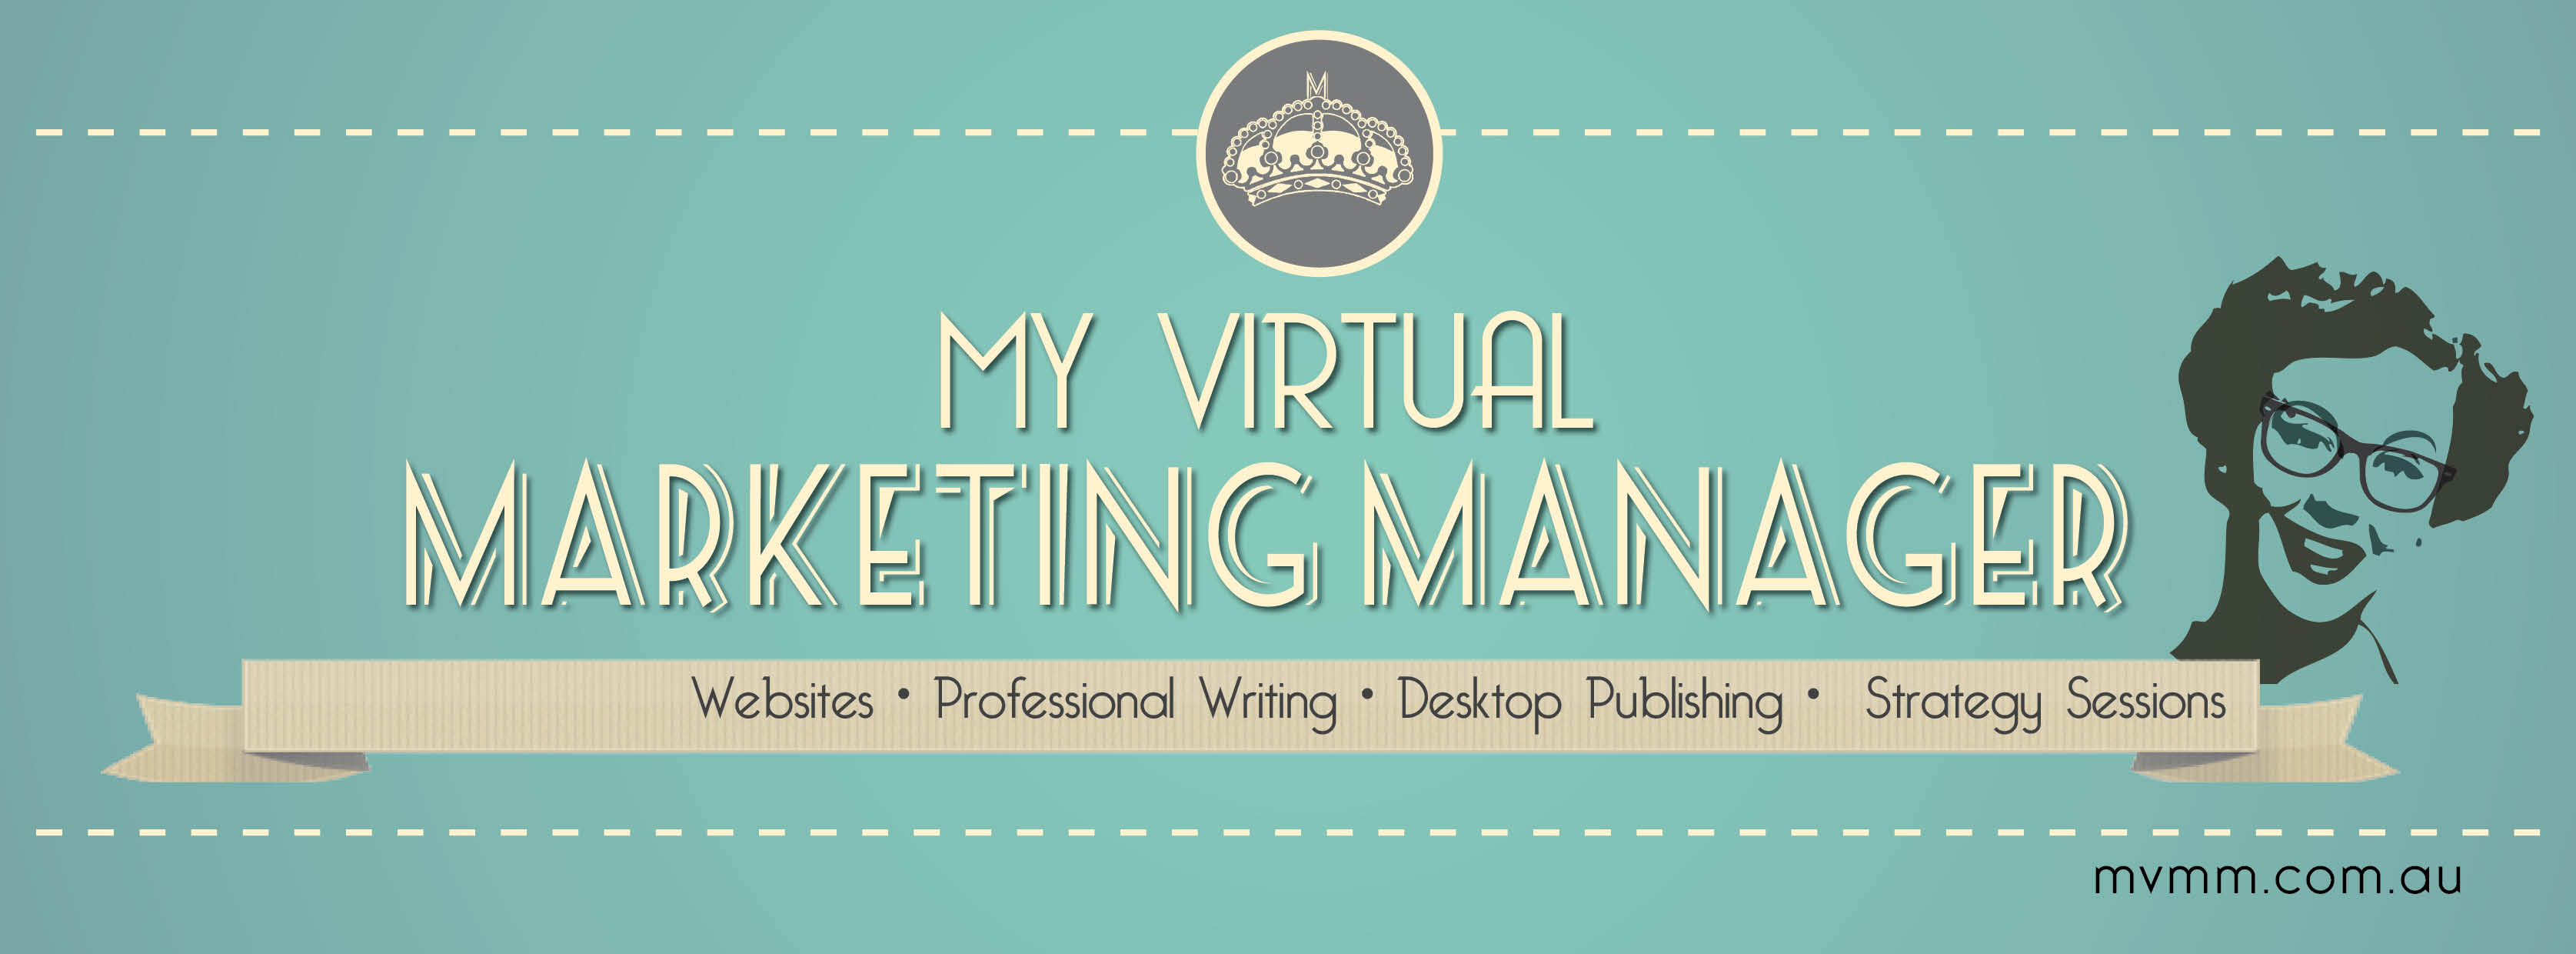 Logo and Branding - My Virtual Marketing Manager